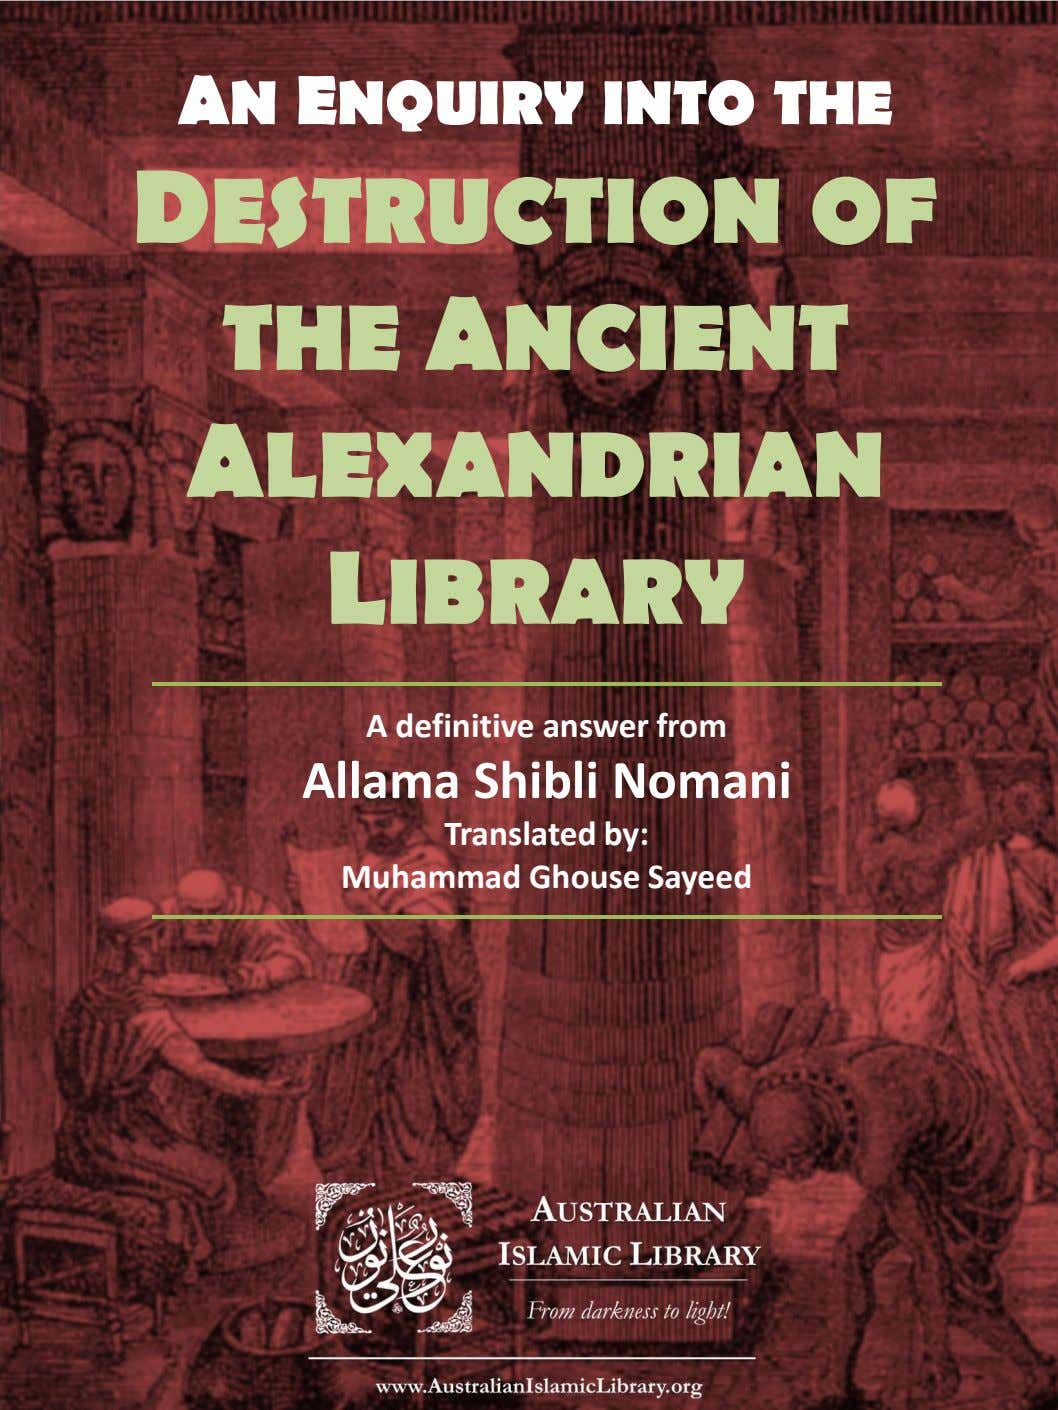 AN ENQUIRY INTO THE DESTRUCTION OF THE ANCIENT ALEXANDRIAN LIBRARY A definitive answer from Allama